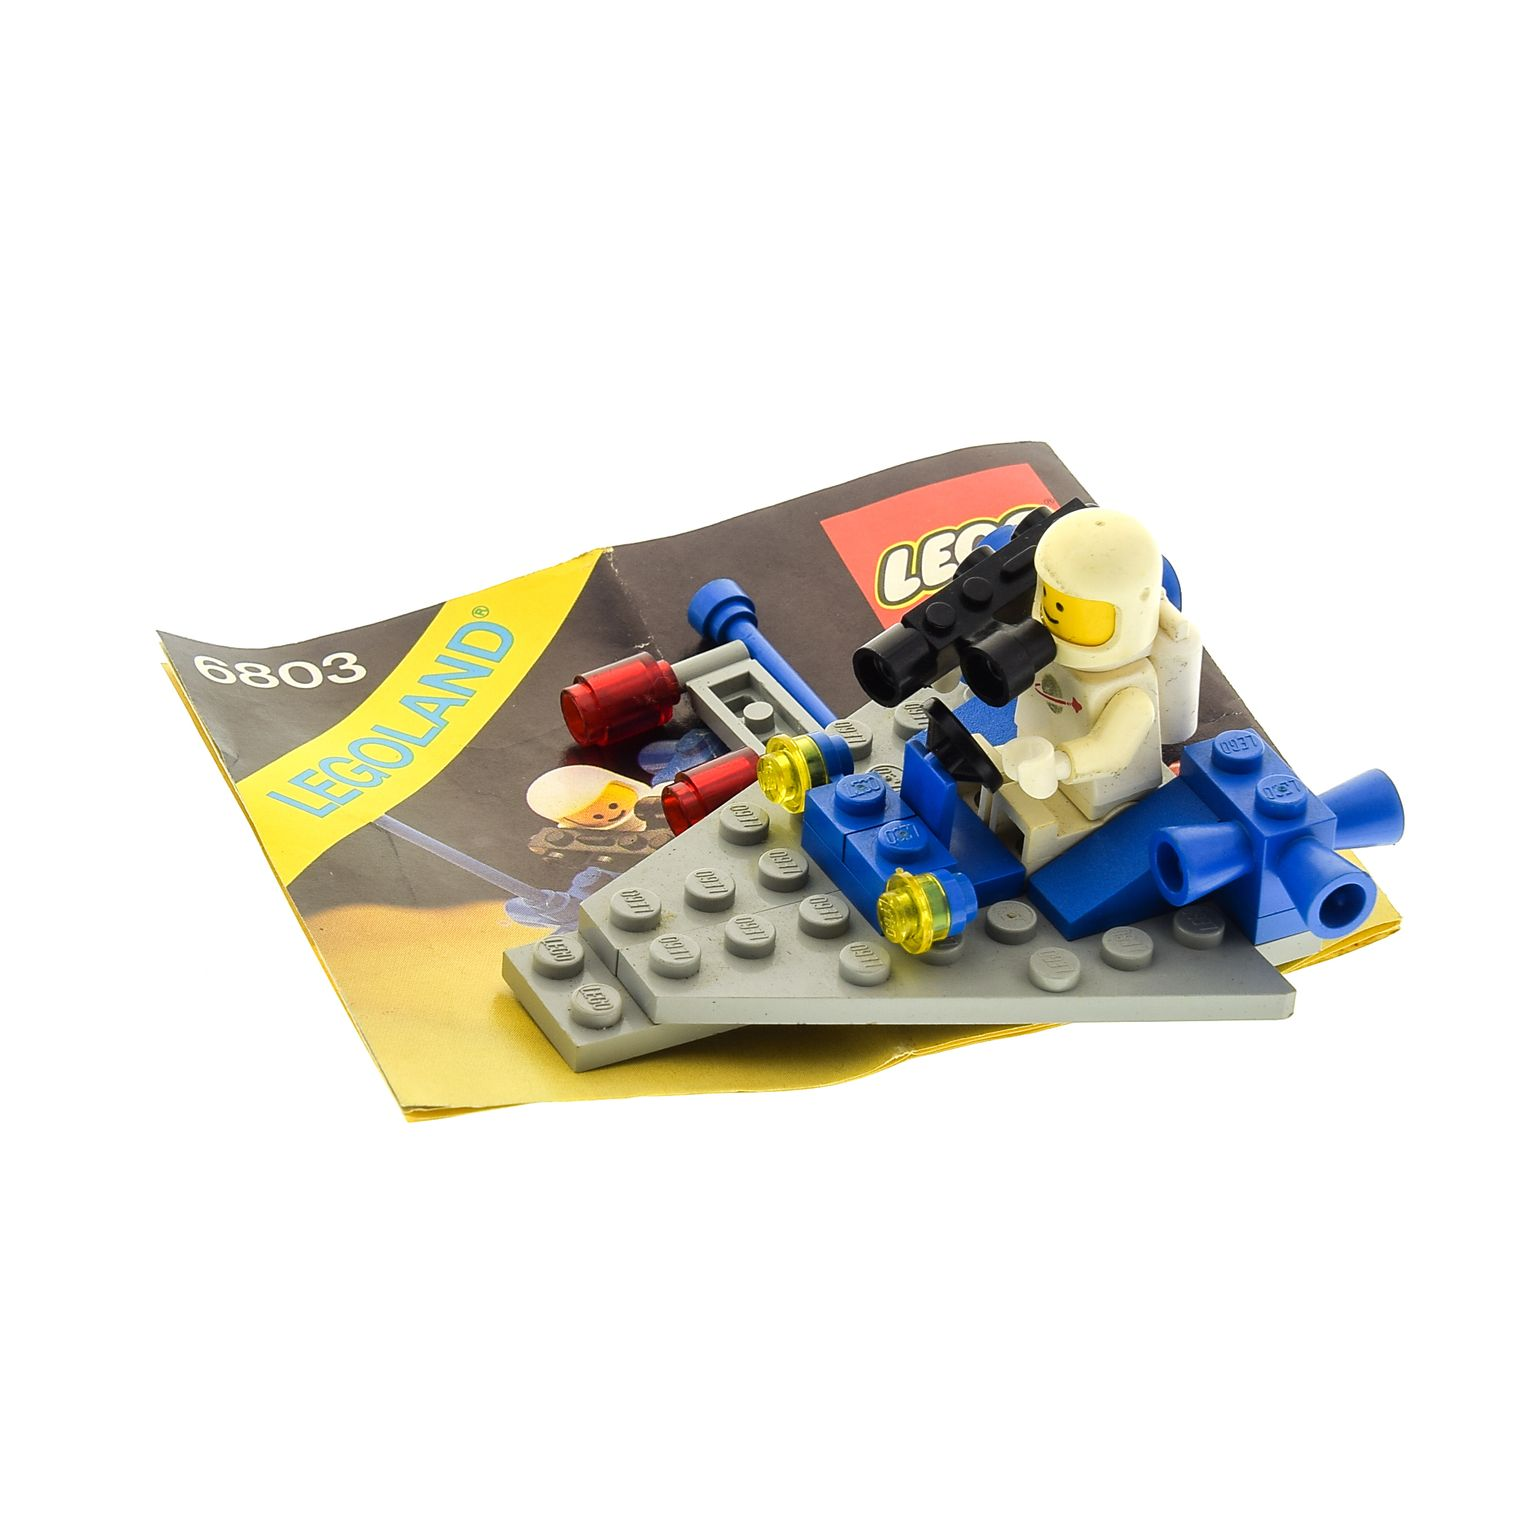 1 X Lego Brick For Set Classic Space 6803 Space Patrol Instruction